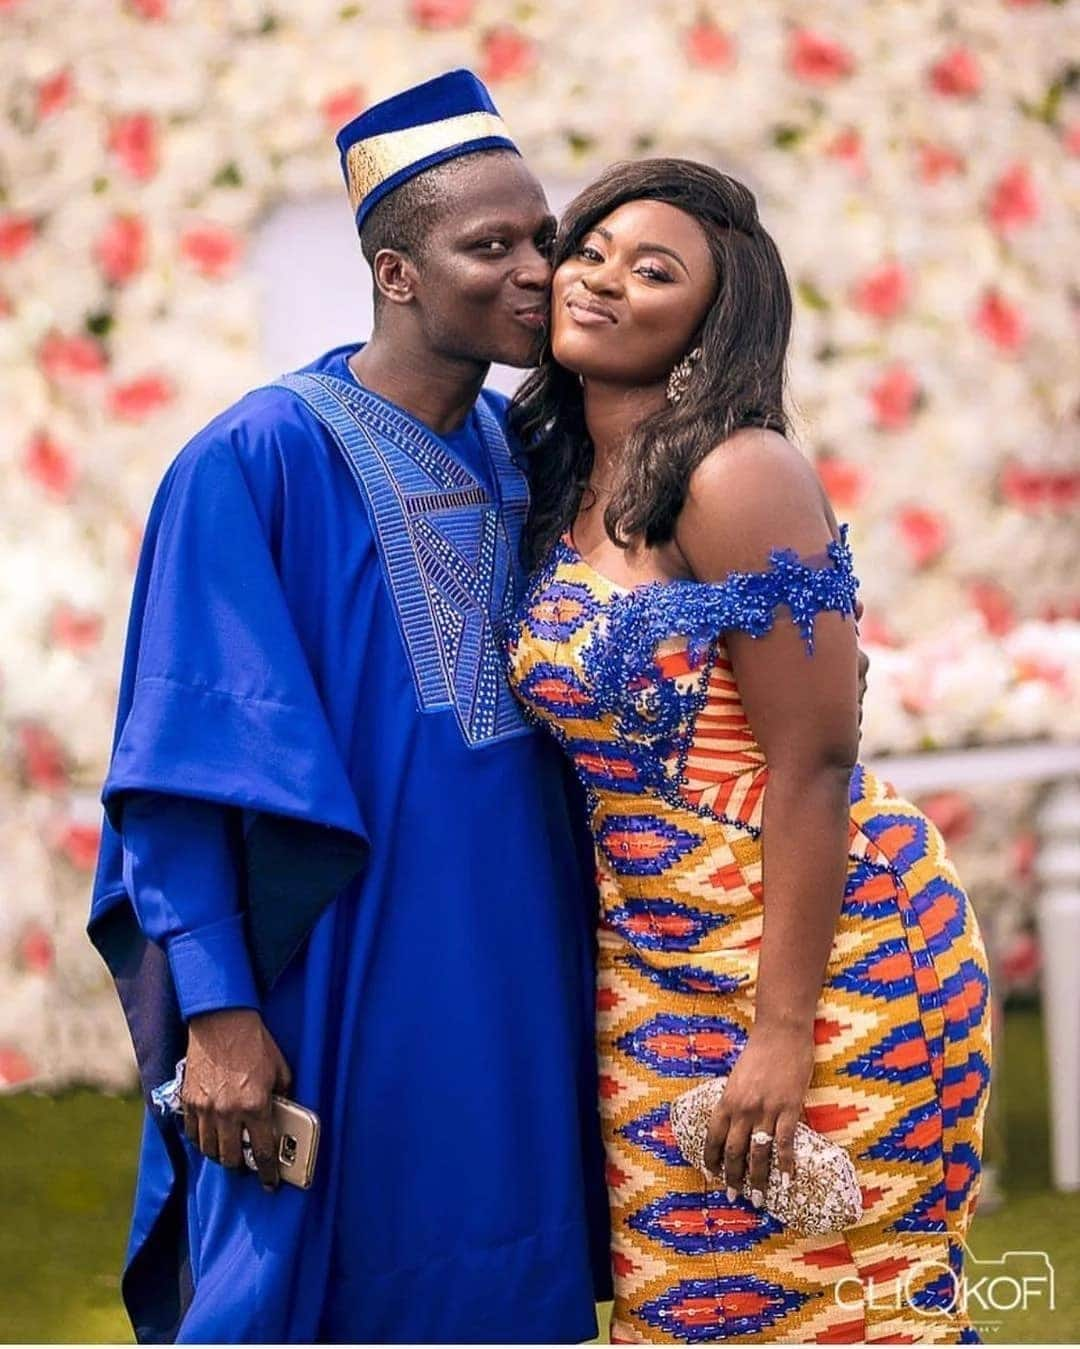 NDC MP John Oti ties the knot